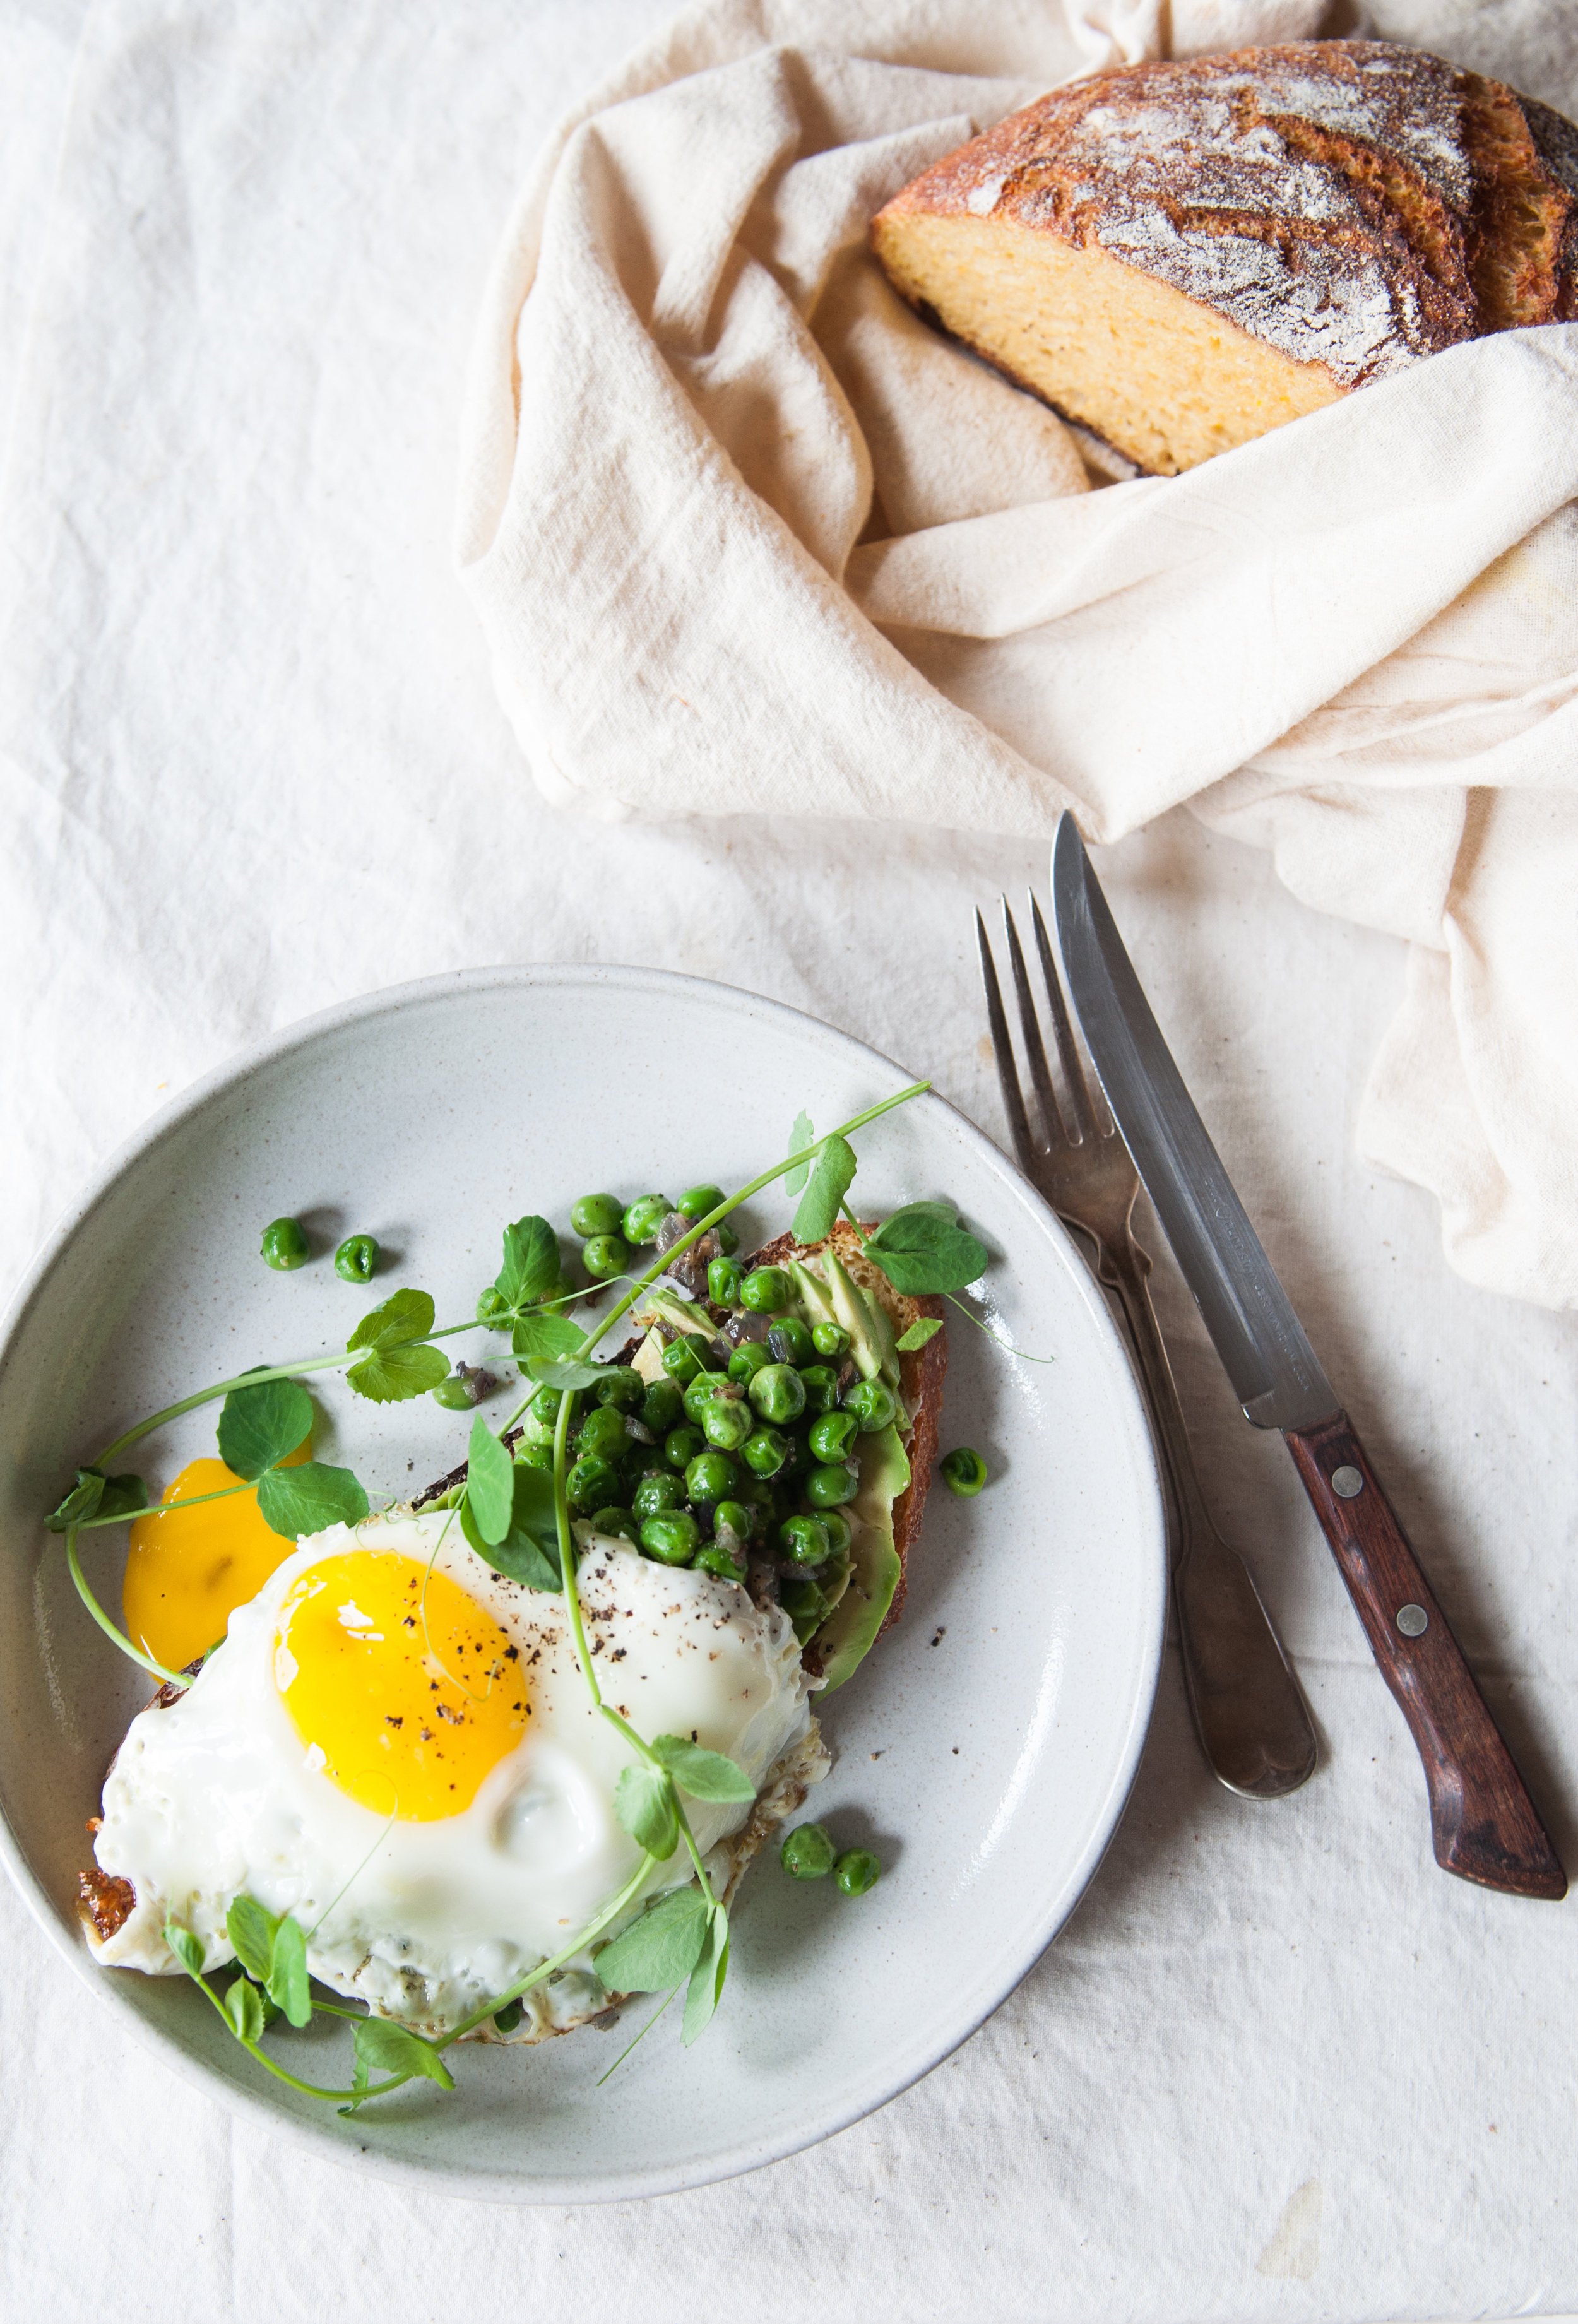 Slice of butternut squash country bread, buttered and topped with smashed avocado, sautéed peas, fried egg and pea shoots for garnish.